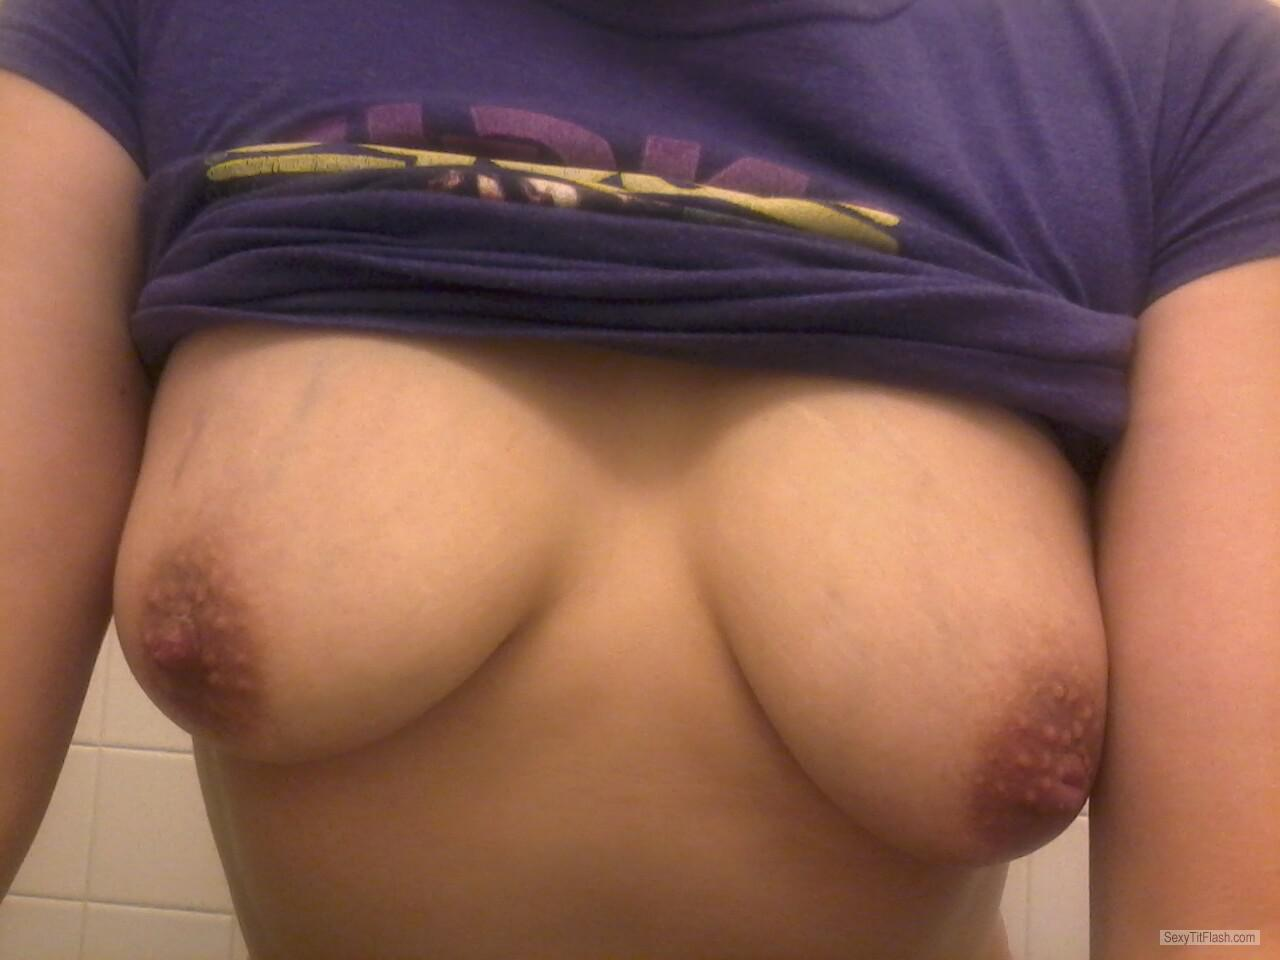 Tit Flash: My Medium Tits (Selfie) - Bunny from United States